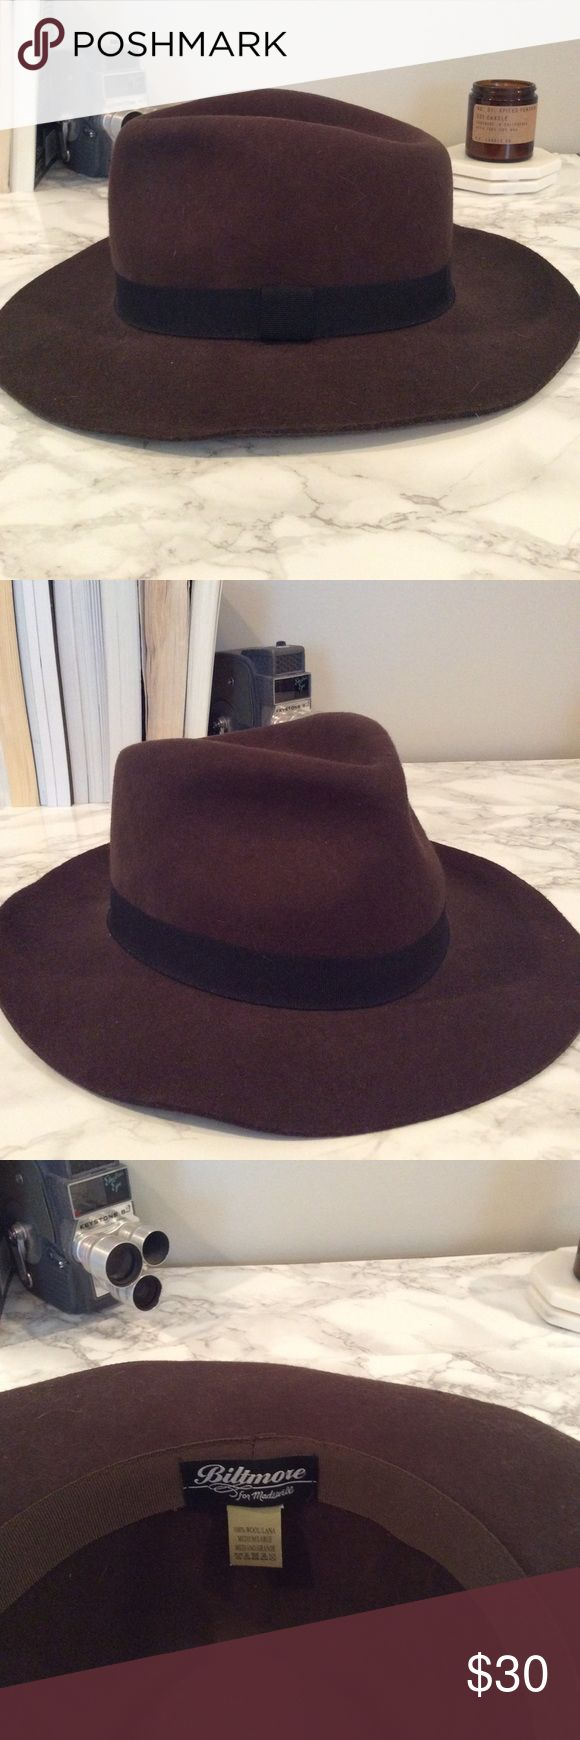 Madewell fedora Brown Madewell fedora. In collaboration with Biltmore hats. Never worn. Felt material, brown with black ribbon around base. Size medium/large. Madewell Accessories Hats